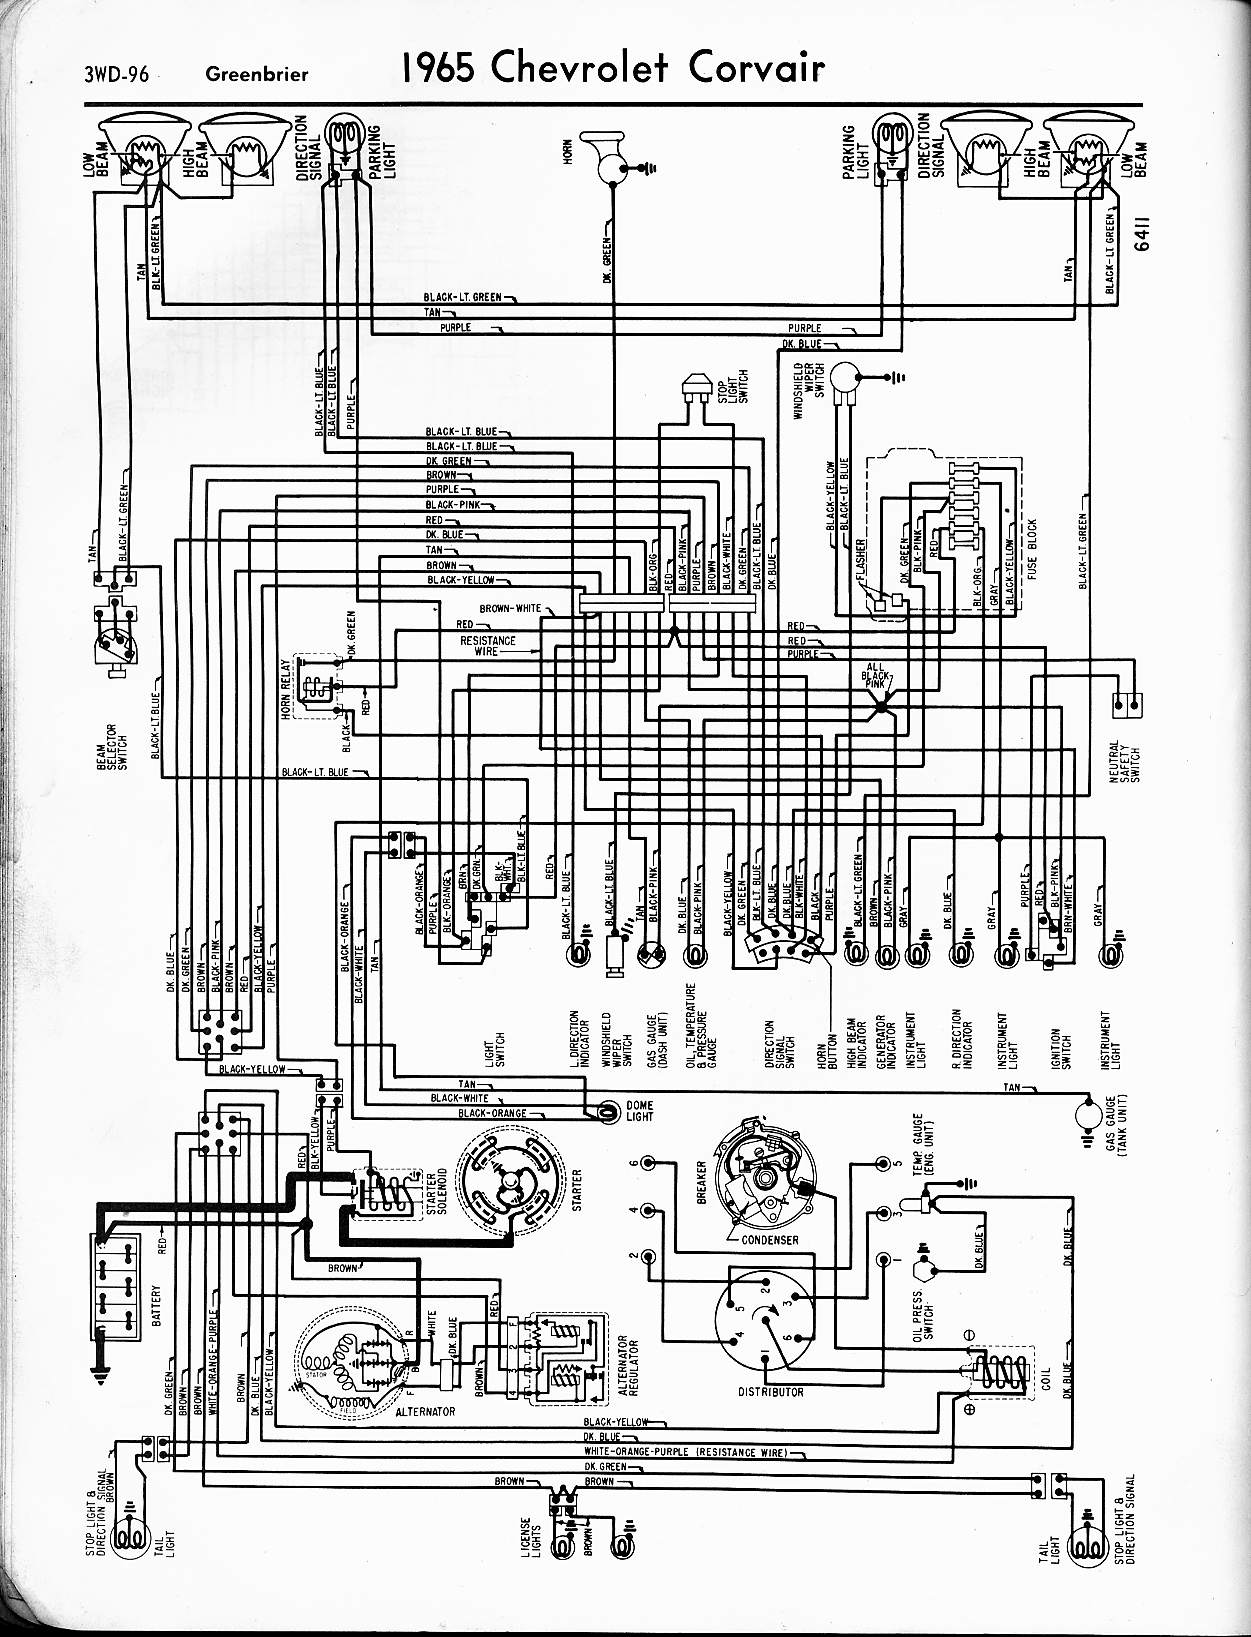 1962 impala dash wiring diagram